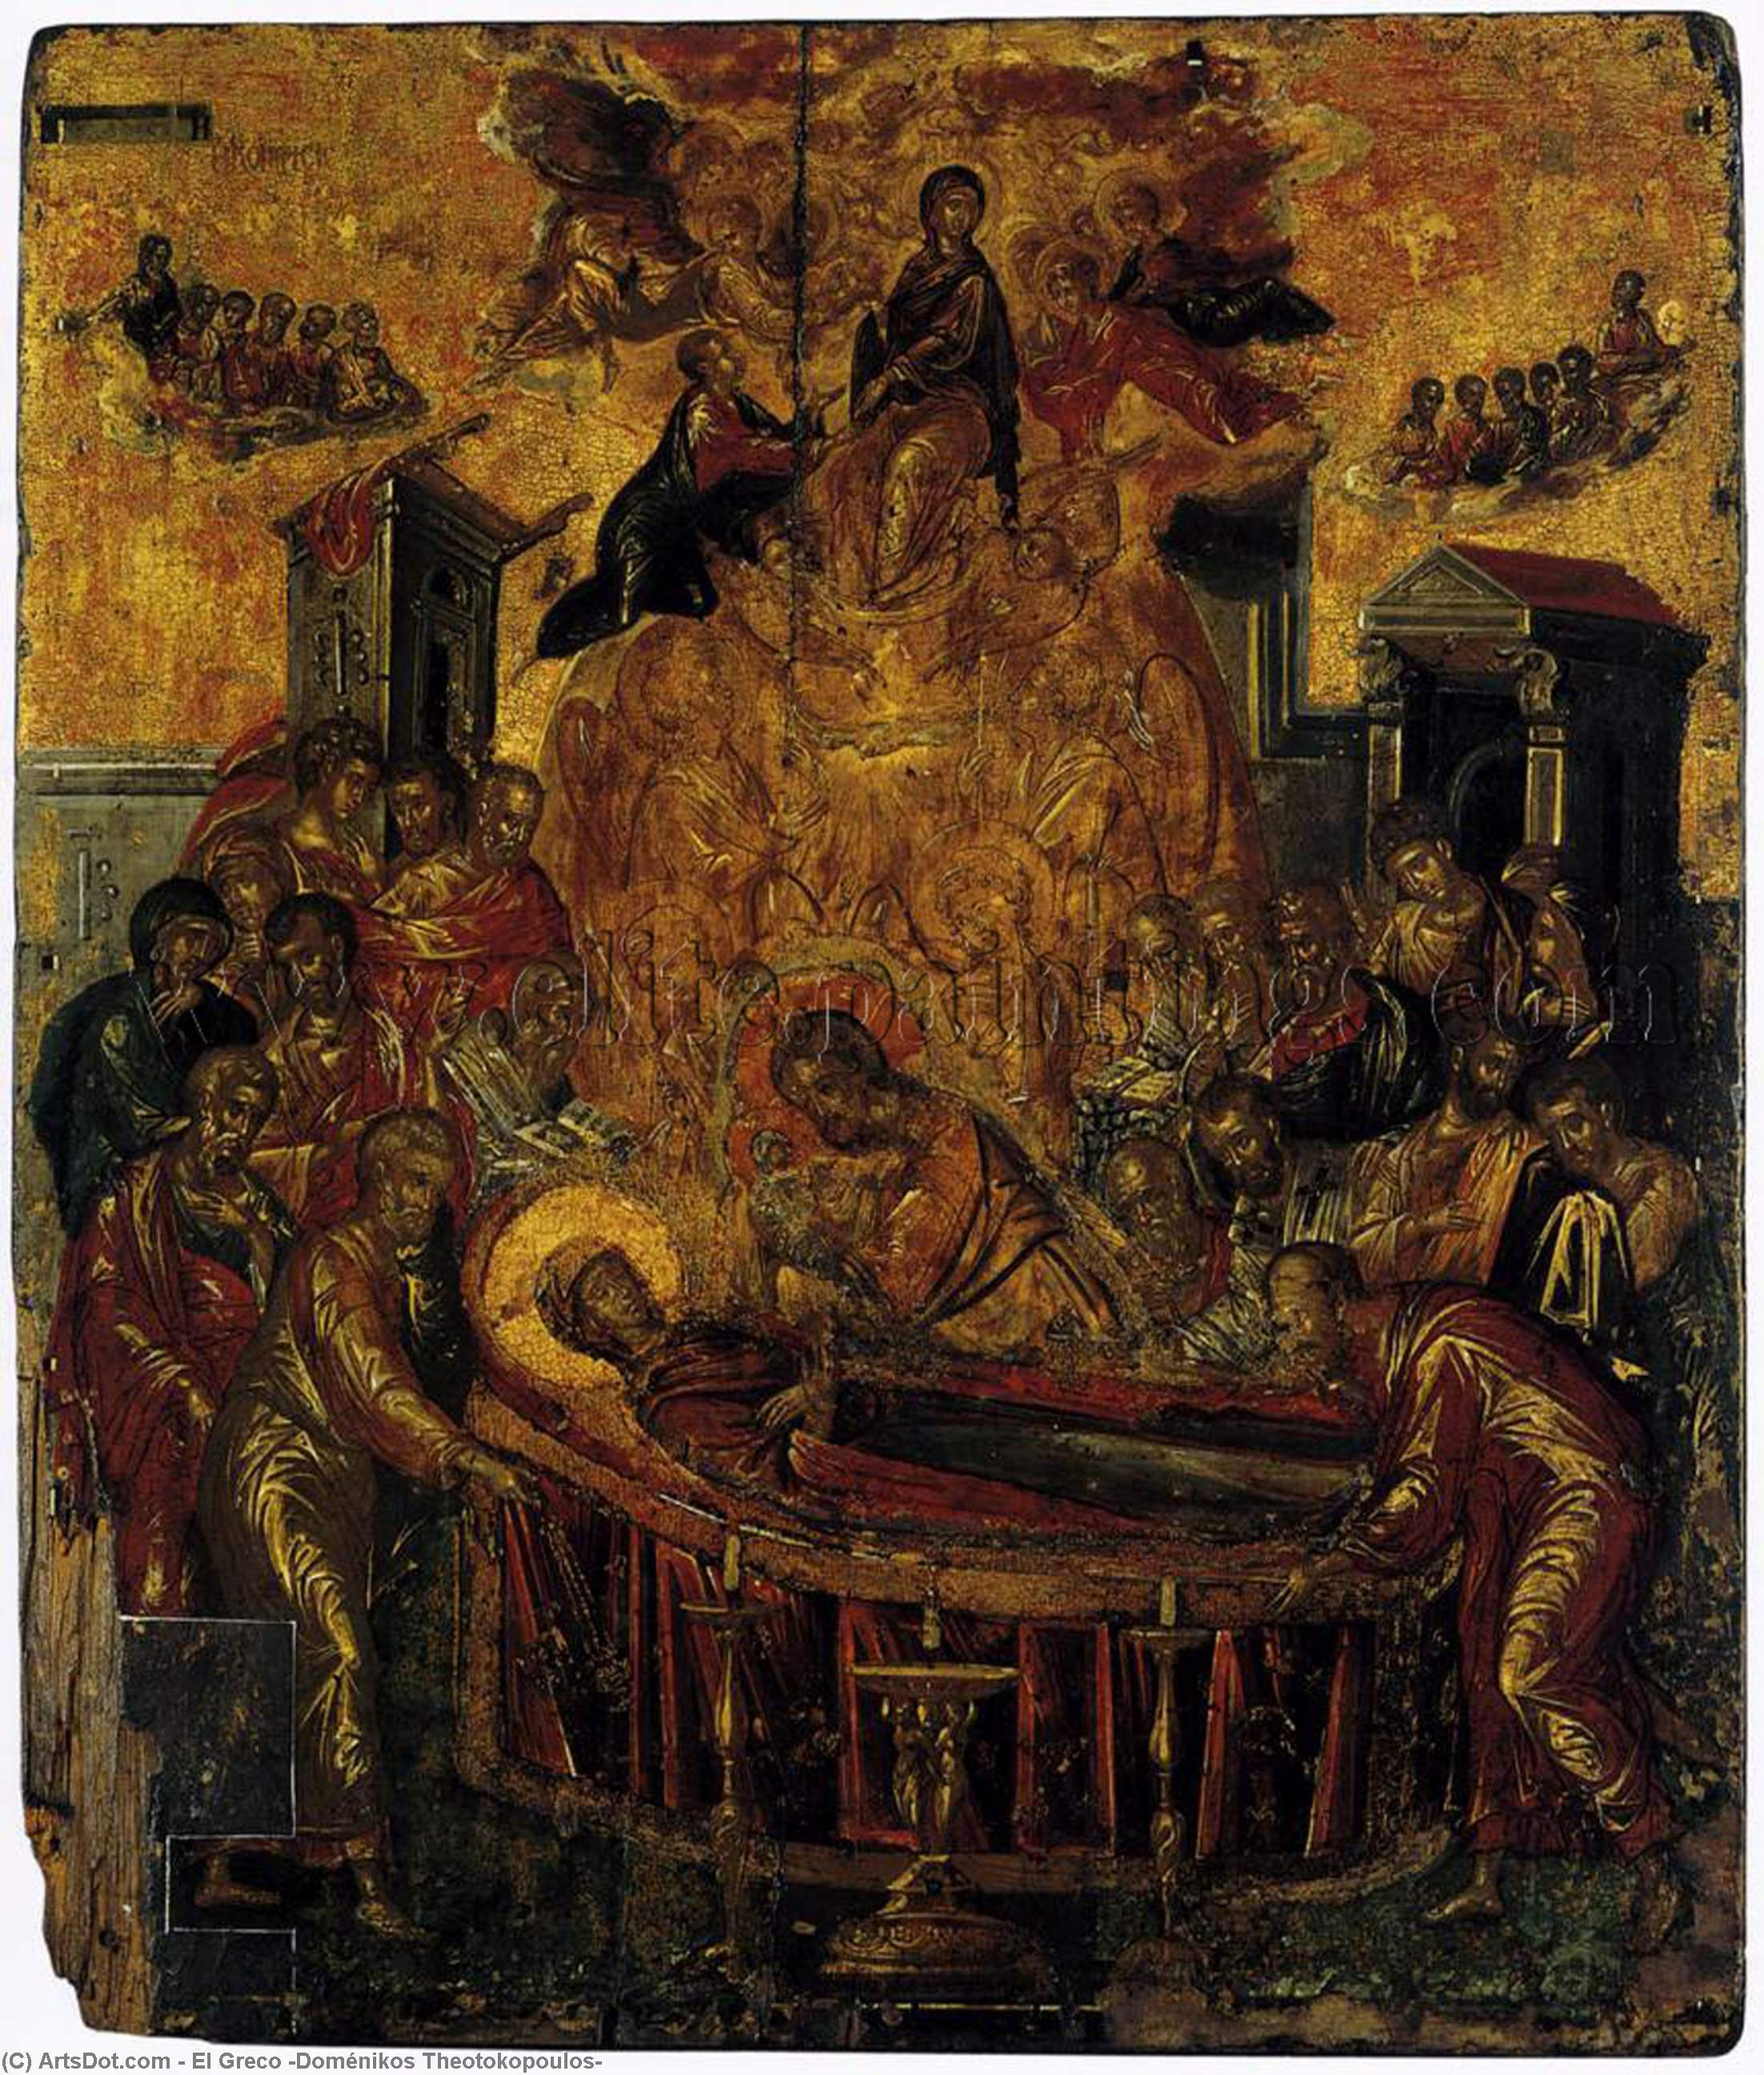 Wikioo.org - The Encyclopedia of Fine Arts - Painting, Artwork by El Greco (Doménikos Theotokopoulos) - The Dormition of the Virgin